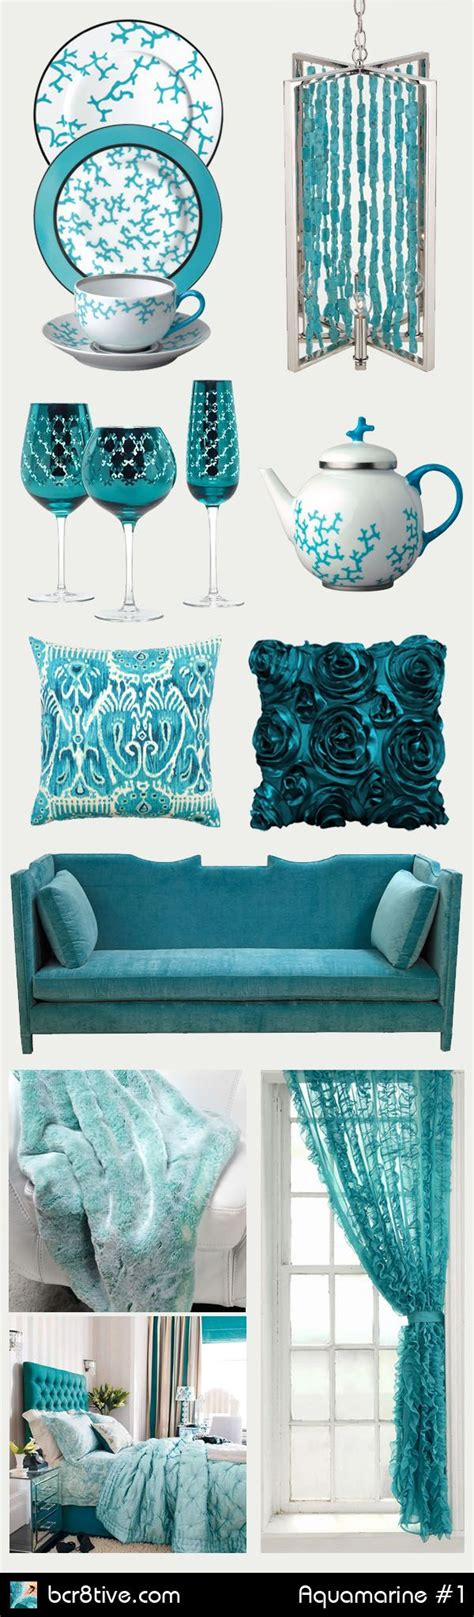 turquoise home decor accents turquoise home decor accents home decor accents